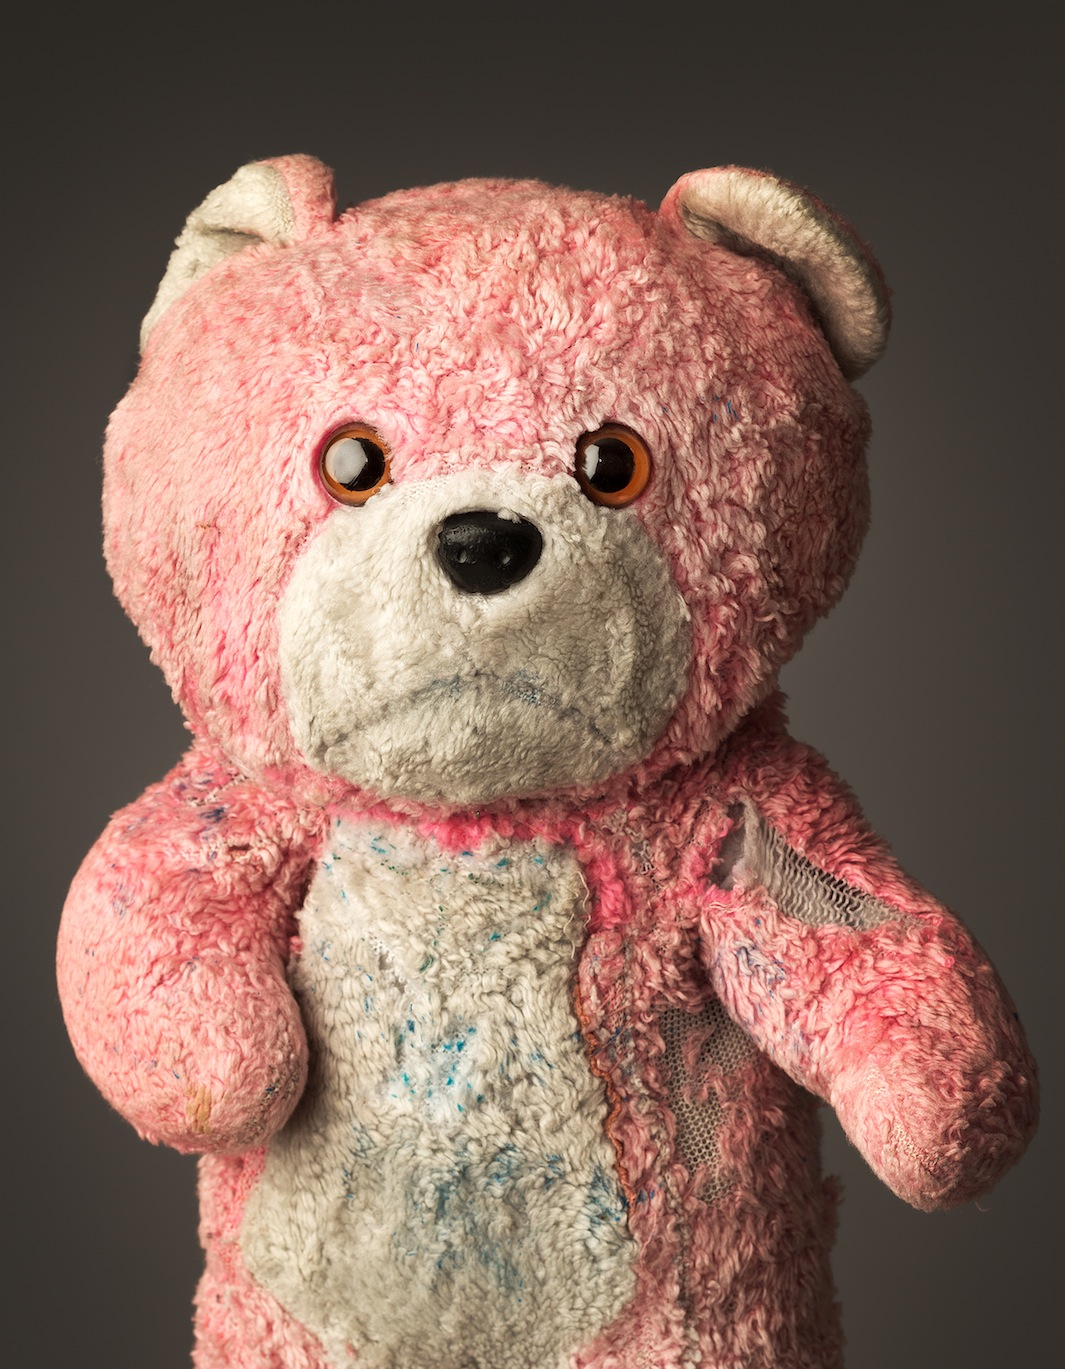 Aisling%20Hurley-Pink%20Teddy%20copy